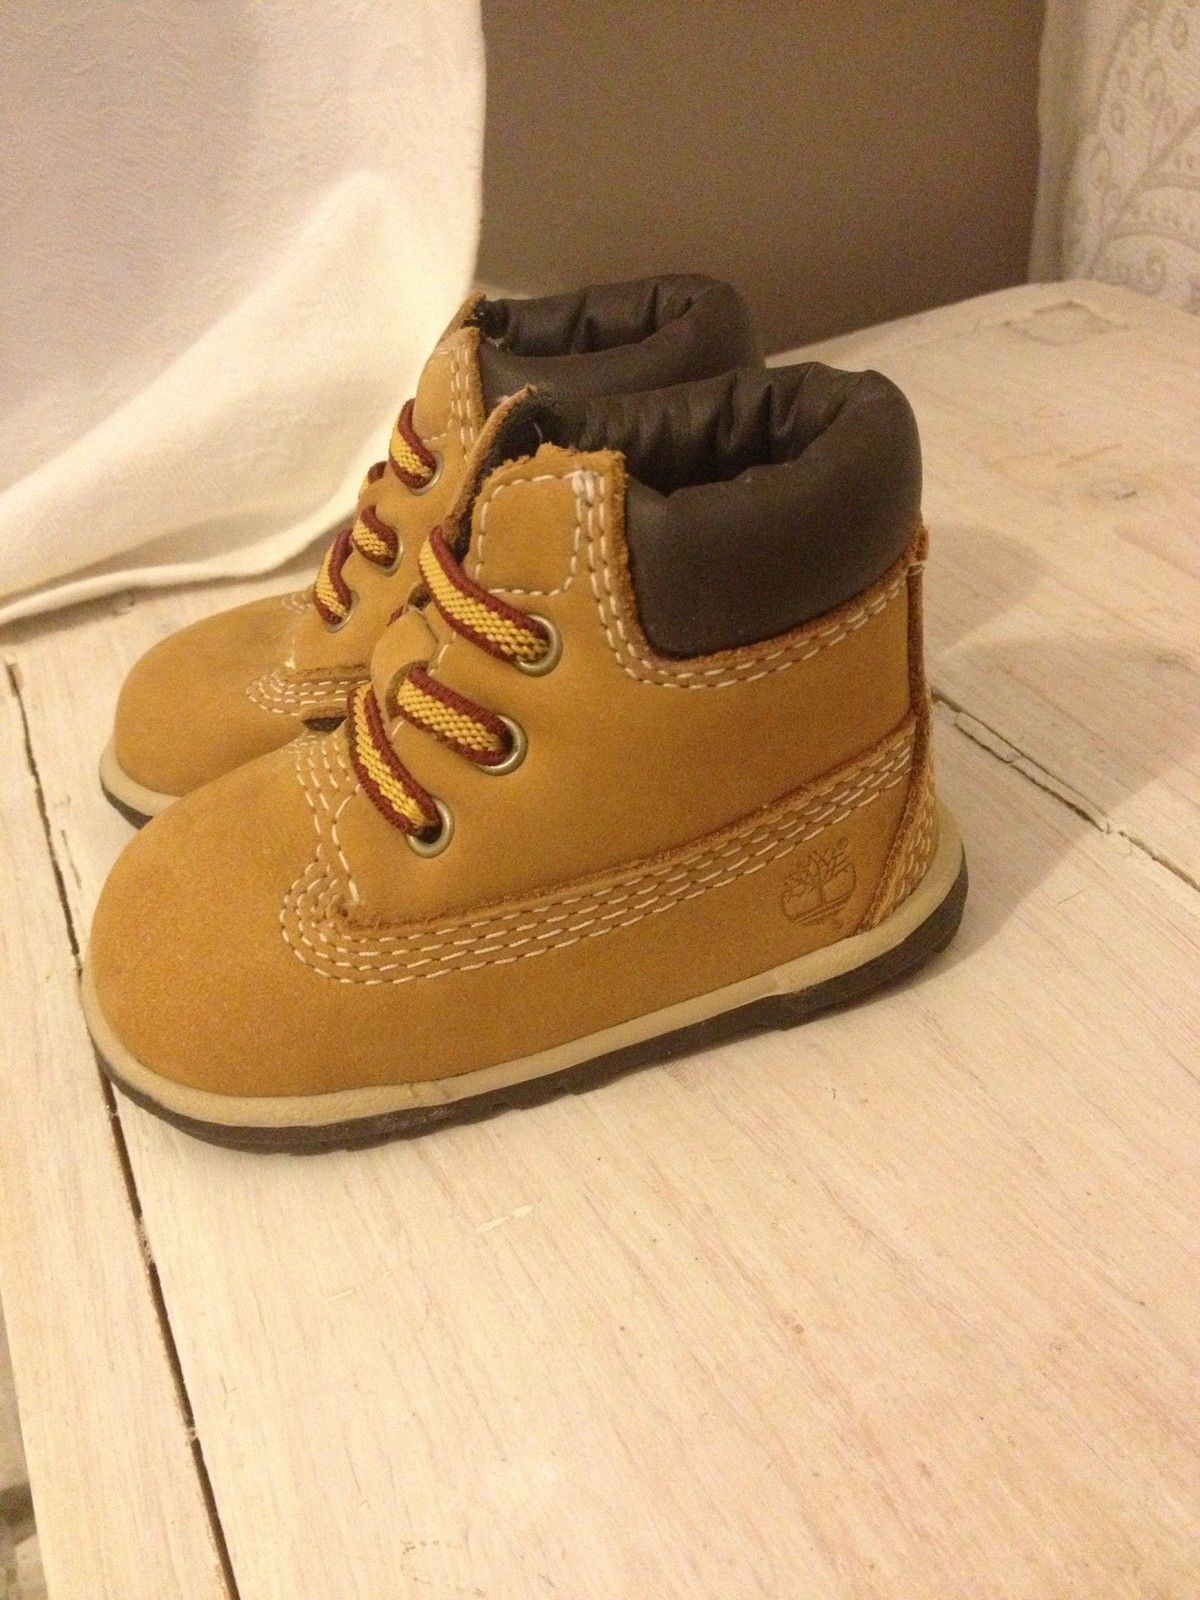 IMMACULATE baby timberland boots Uk 0.5 Tan Baby shoes